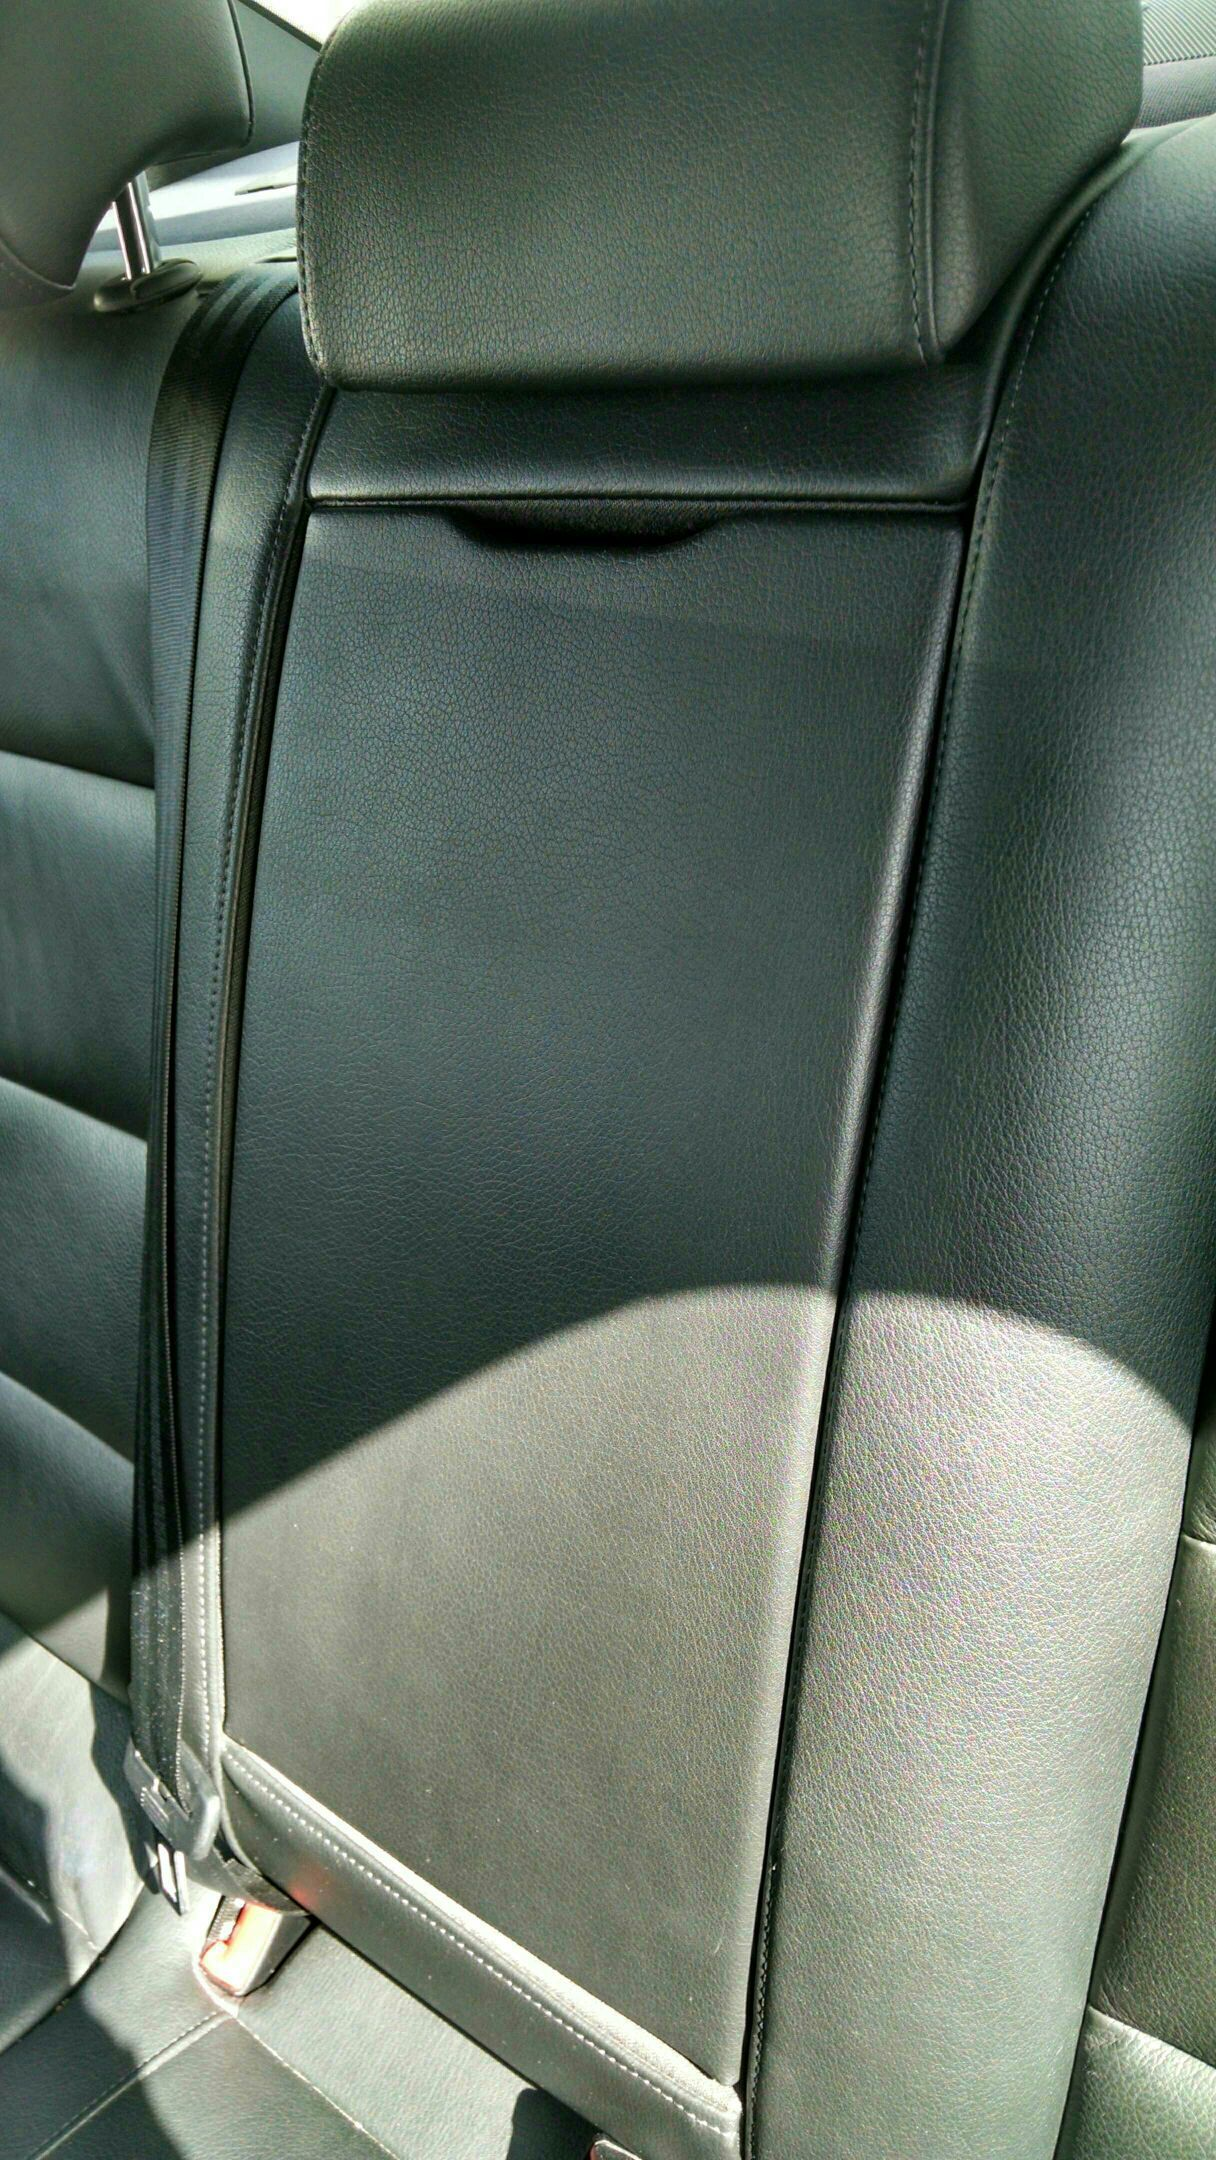 How To Open Car Trunk Without Key : trunk, without, Audizine, Forums